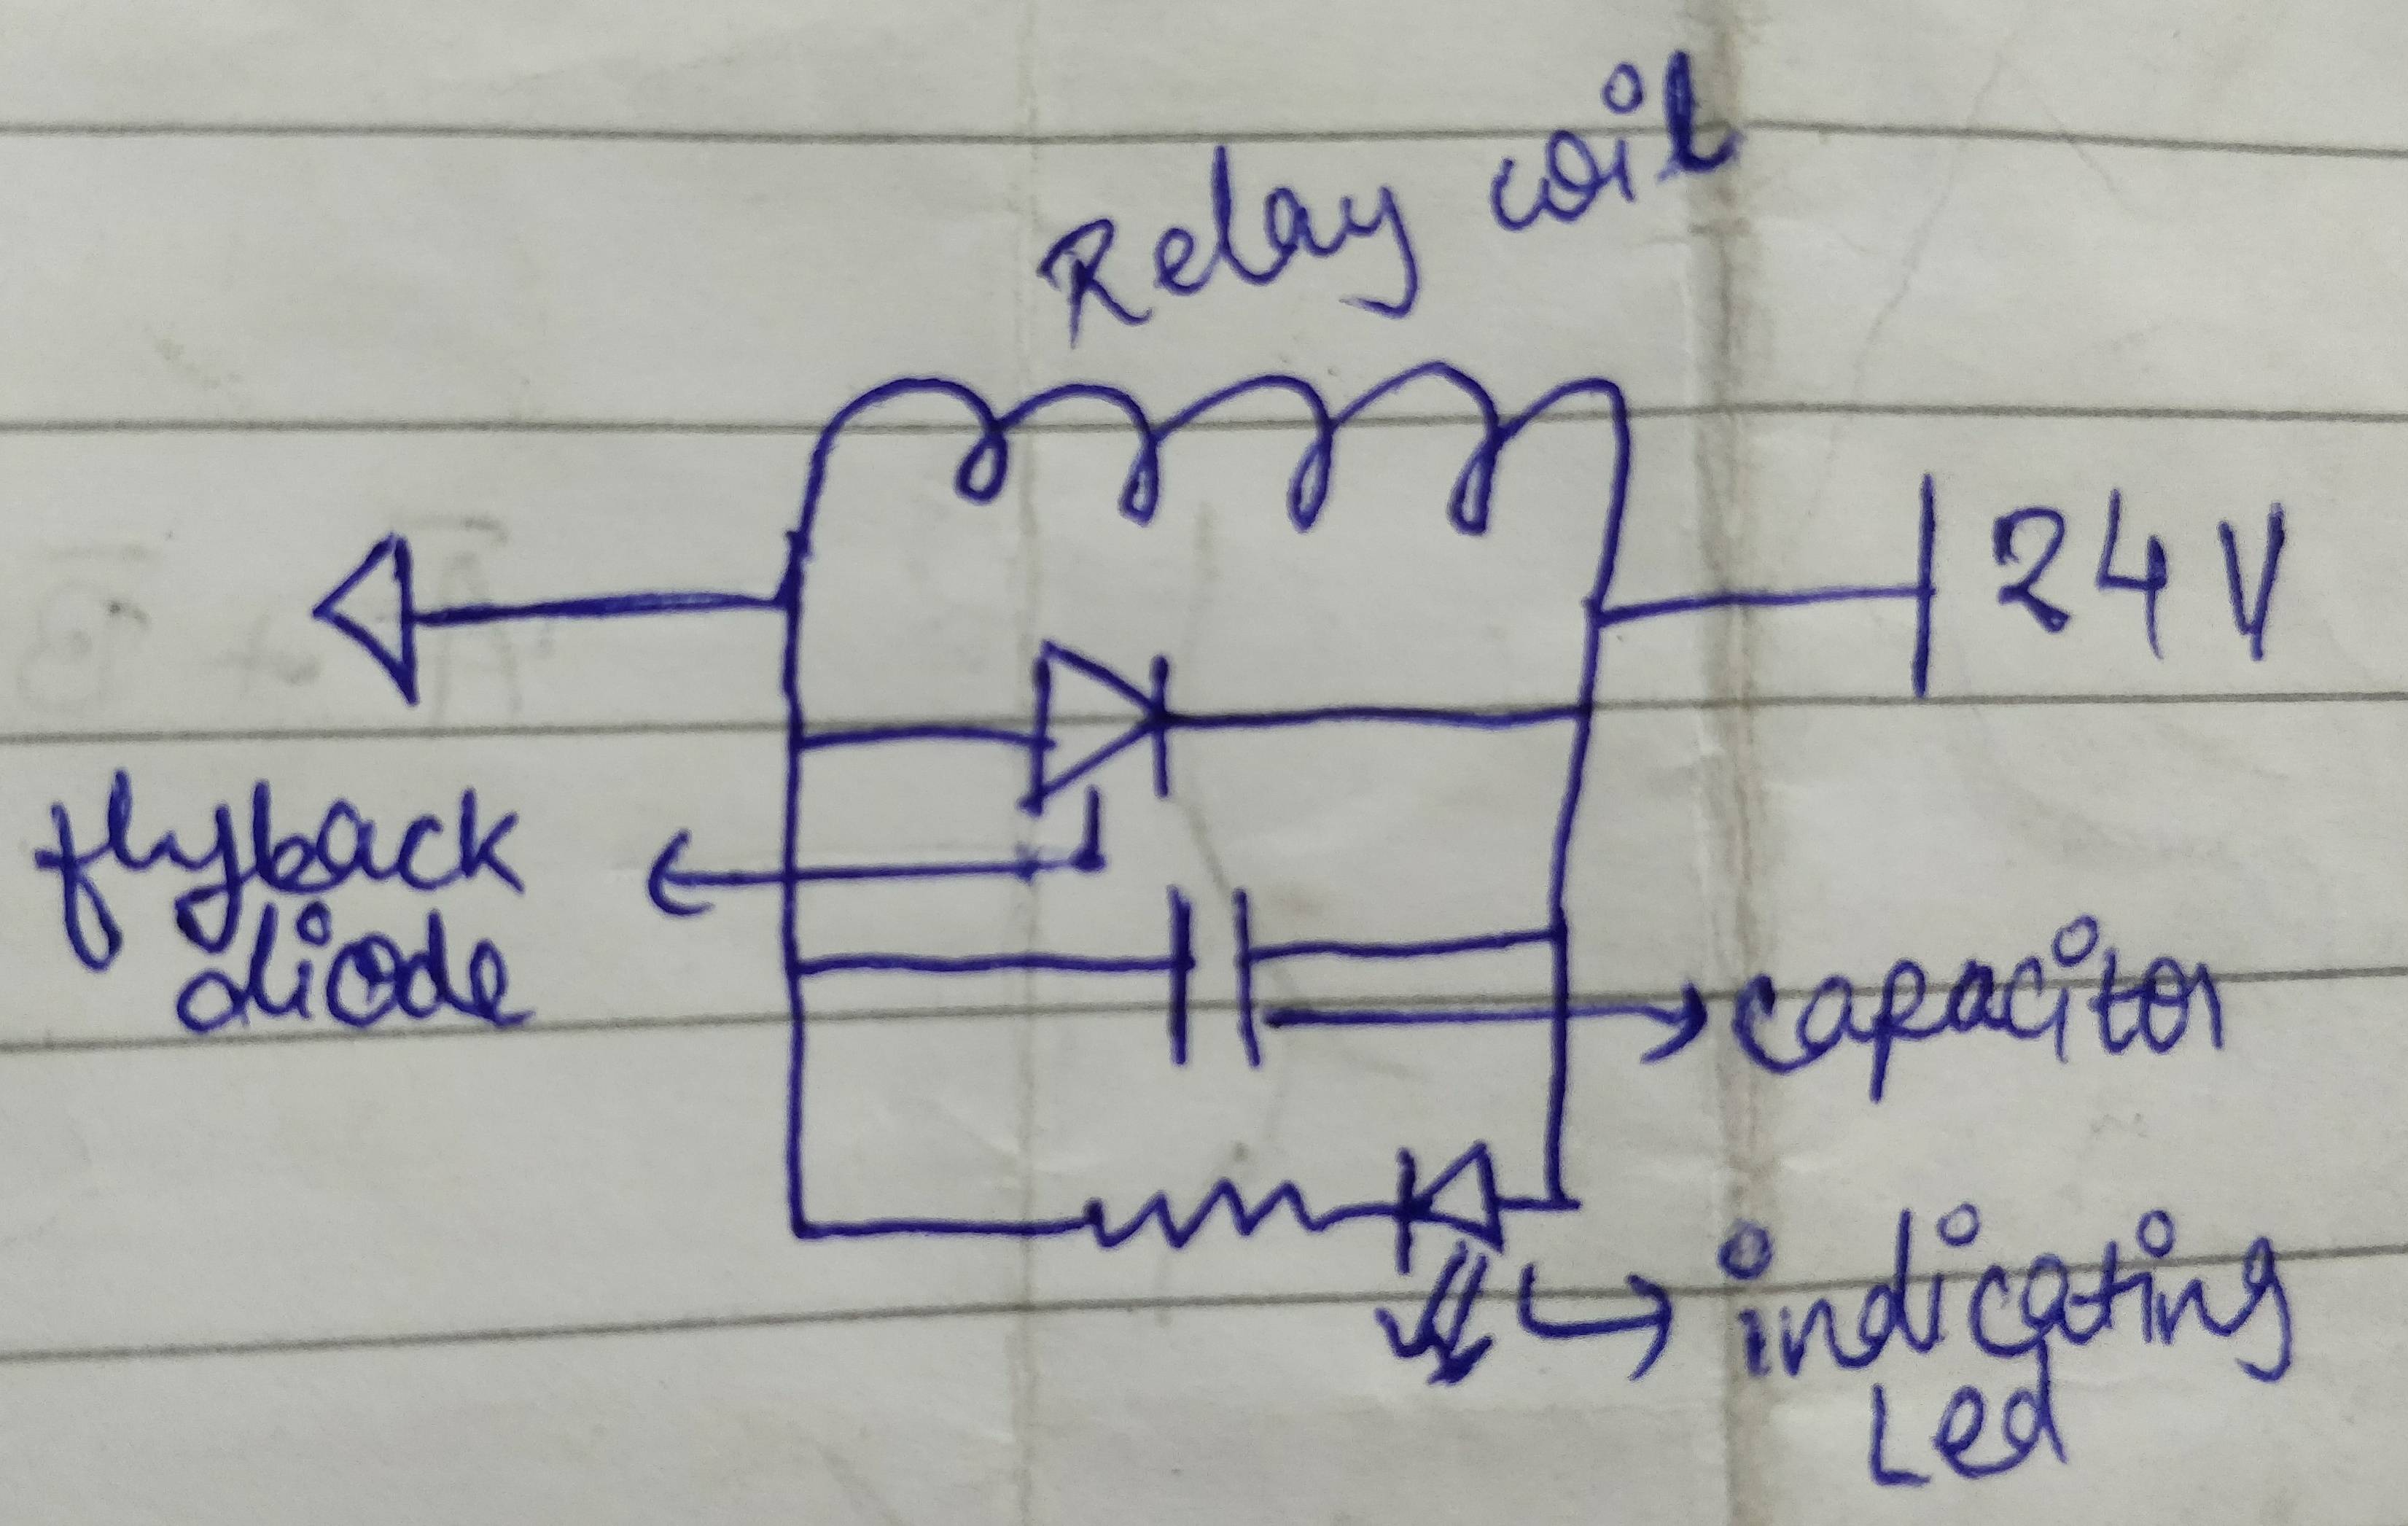 Schematic Diagram For A Voltage Doubling Circuit Capacitor Values Are